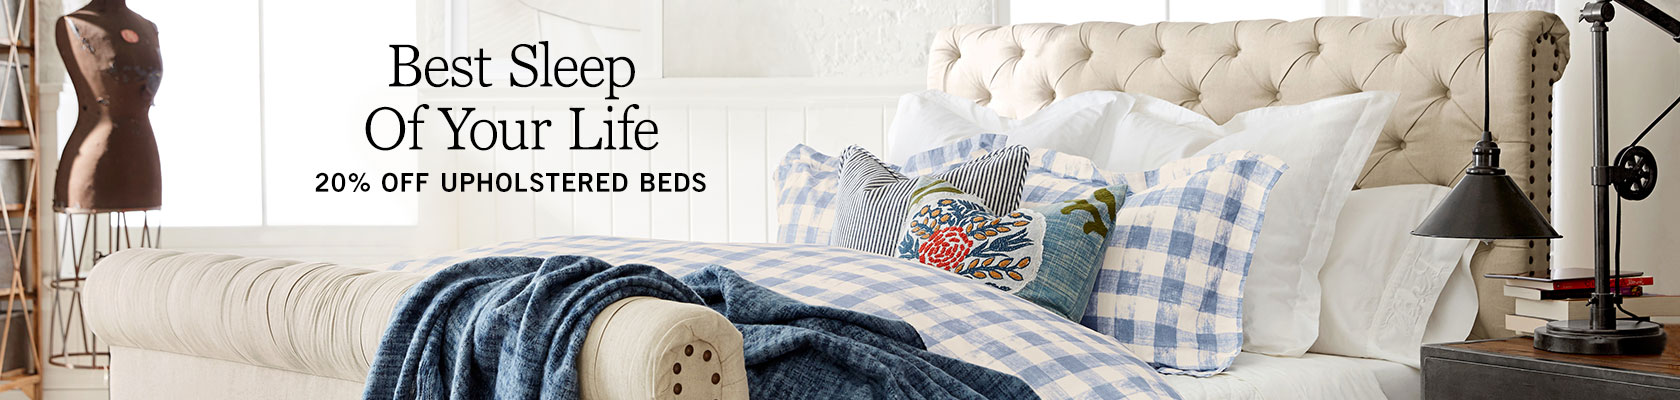 Upholstered Beds Sale